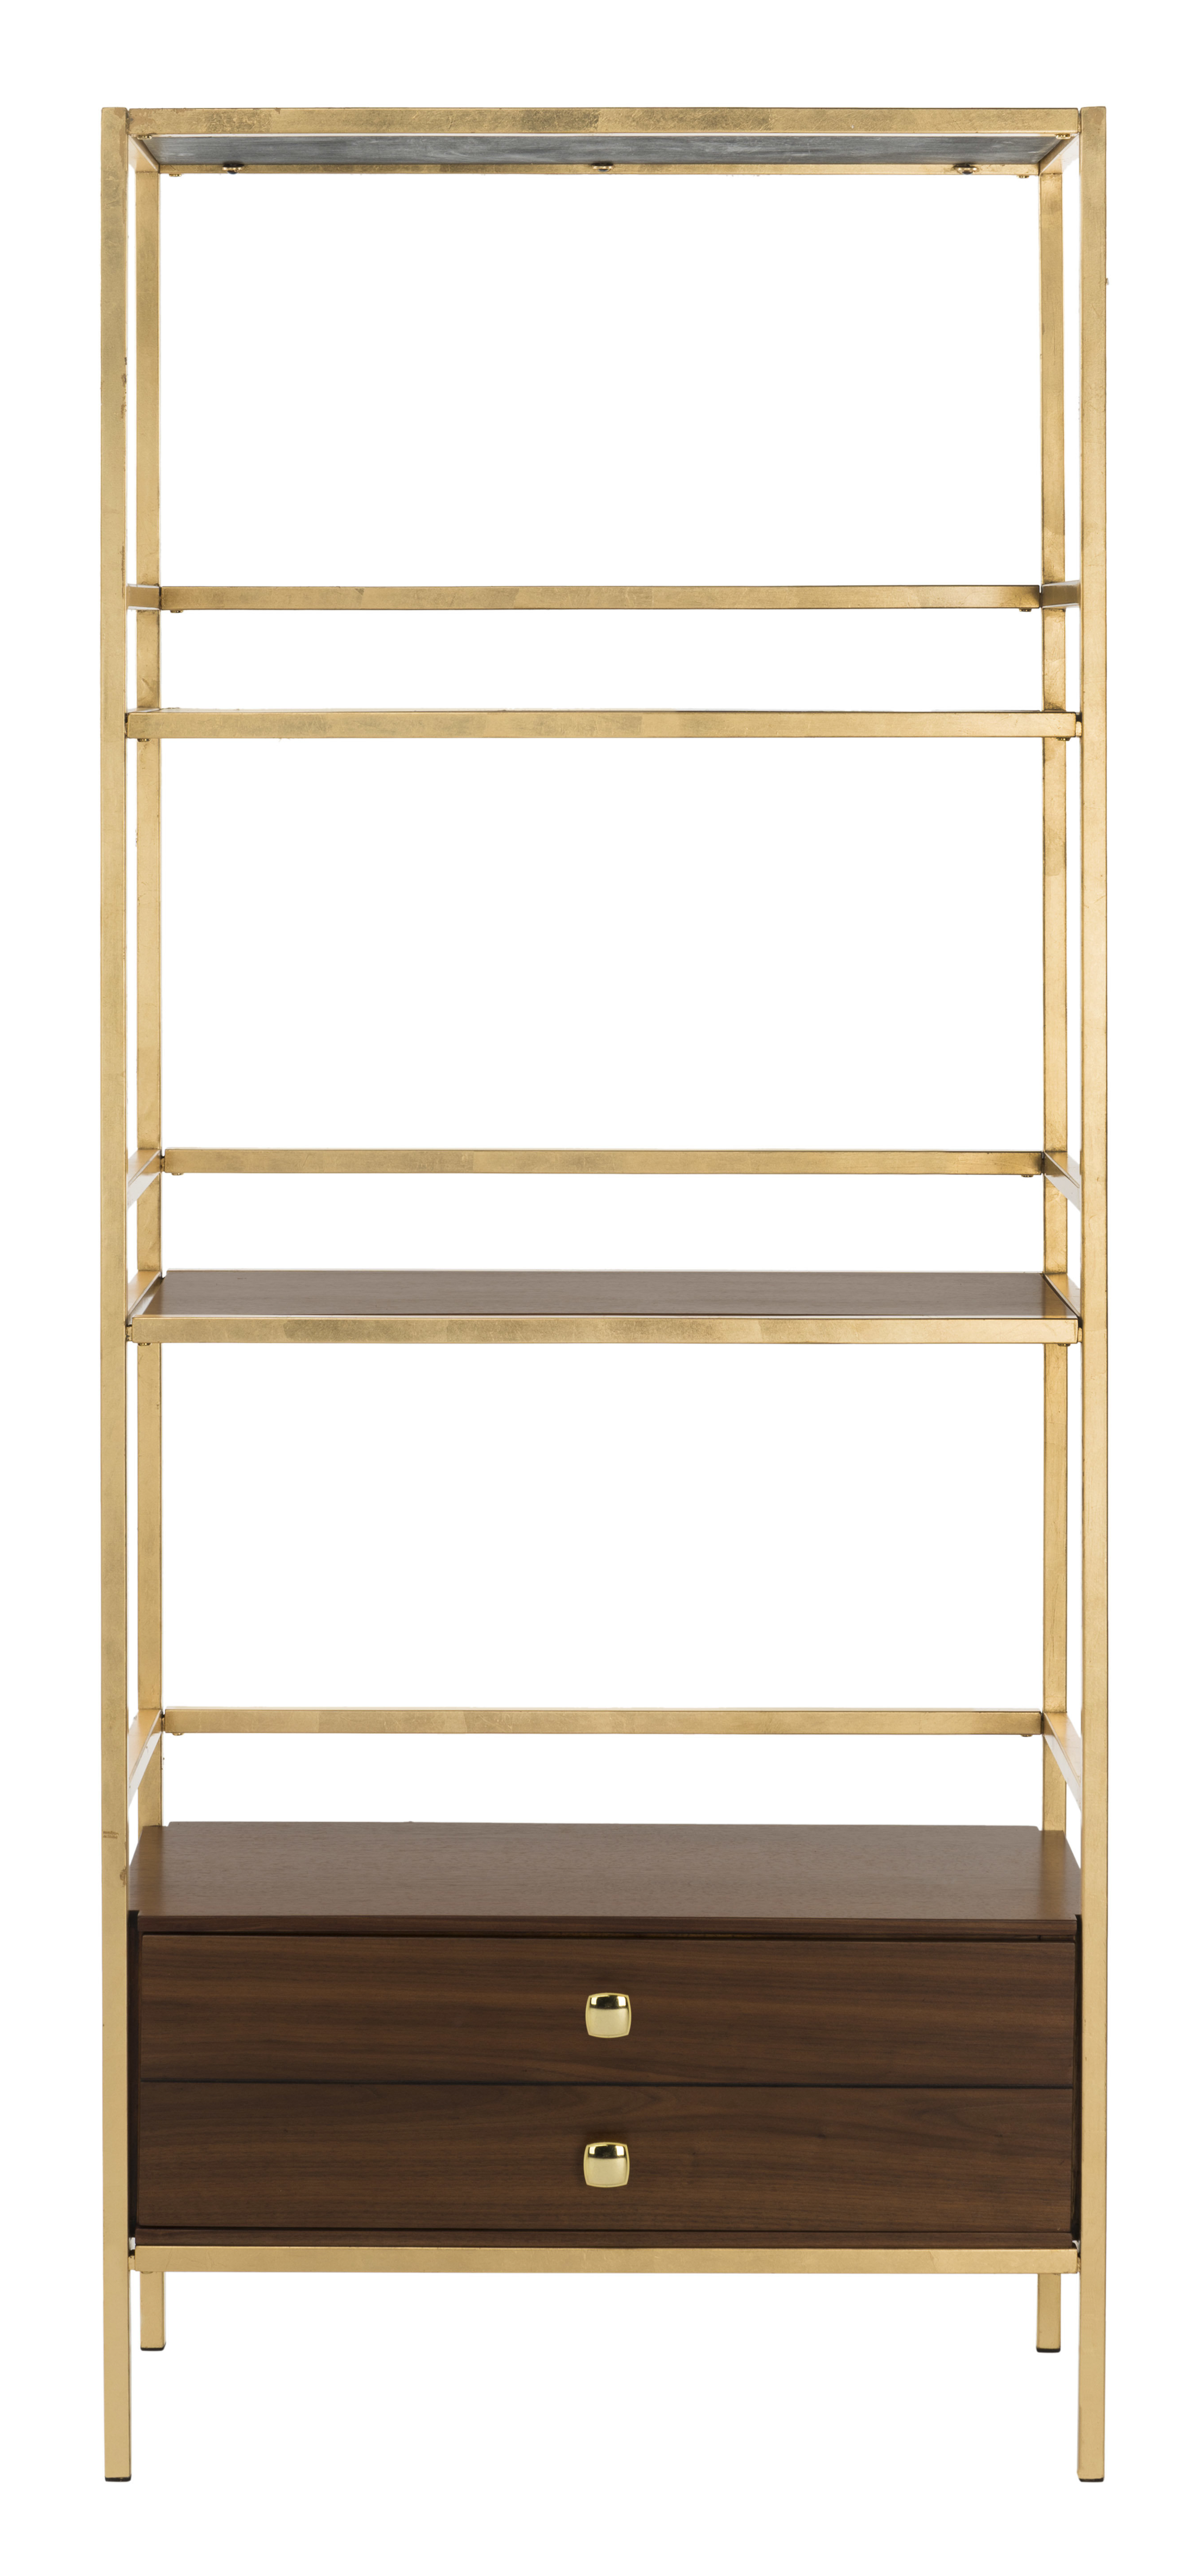 2019 Arrighetto 4 Tier Etagere Bookcase Intended For Rech 4 Tier Etagere Bookcases (Gallery 7 of 20)